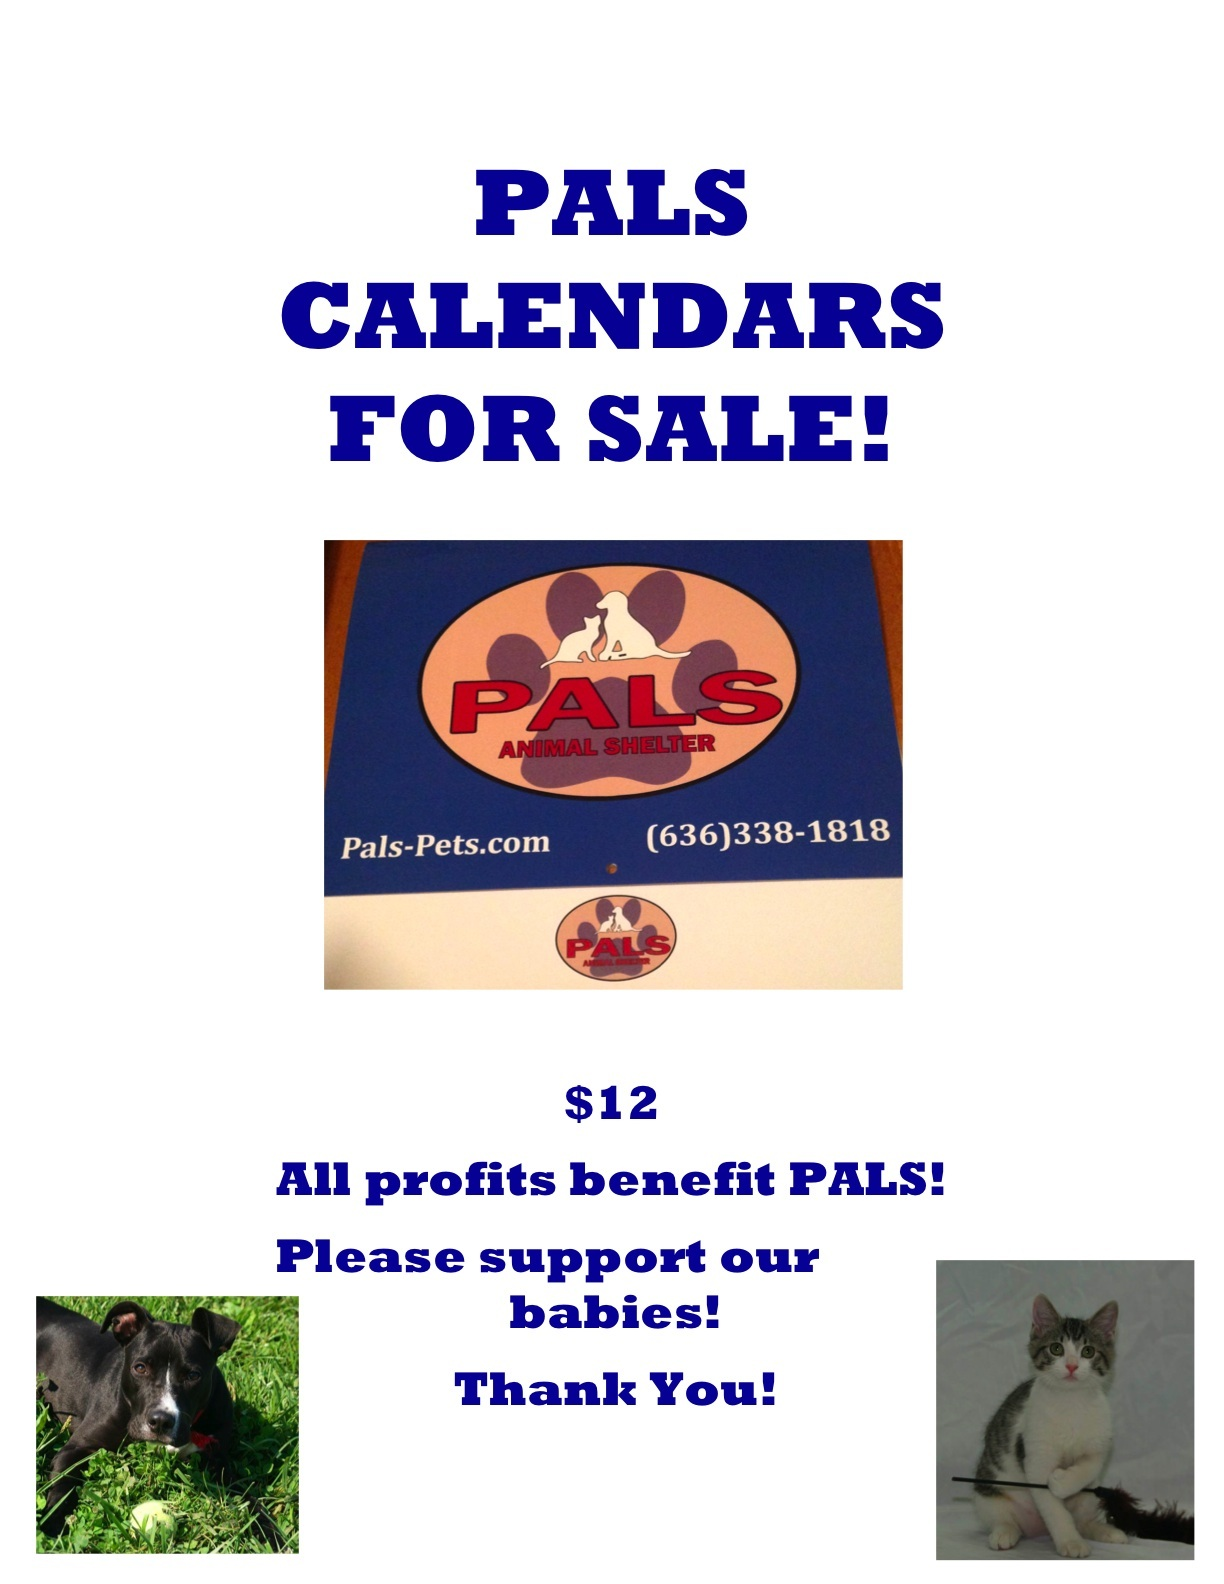 https://pals-pets.com/wp-content/uploads/2014/10/PALS-CALENDARS-FLYER.jpeg